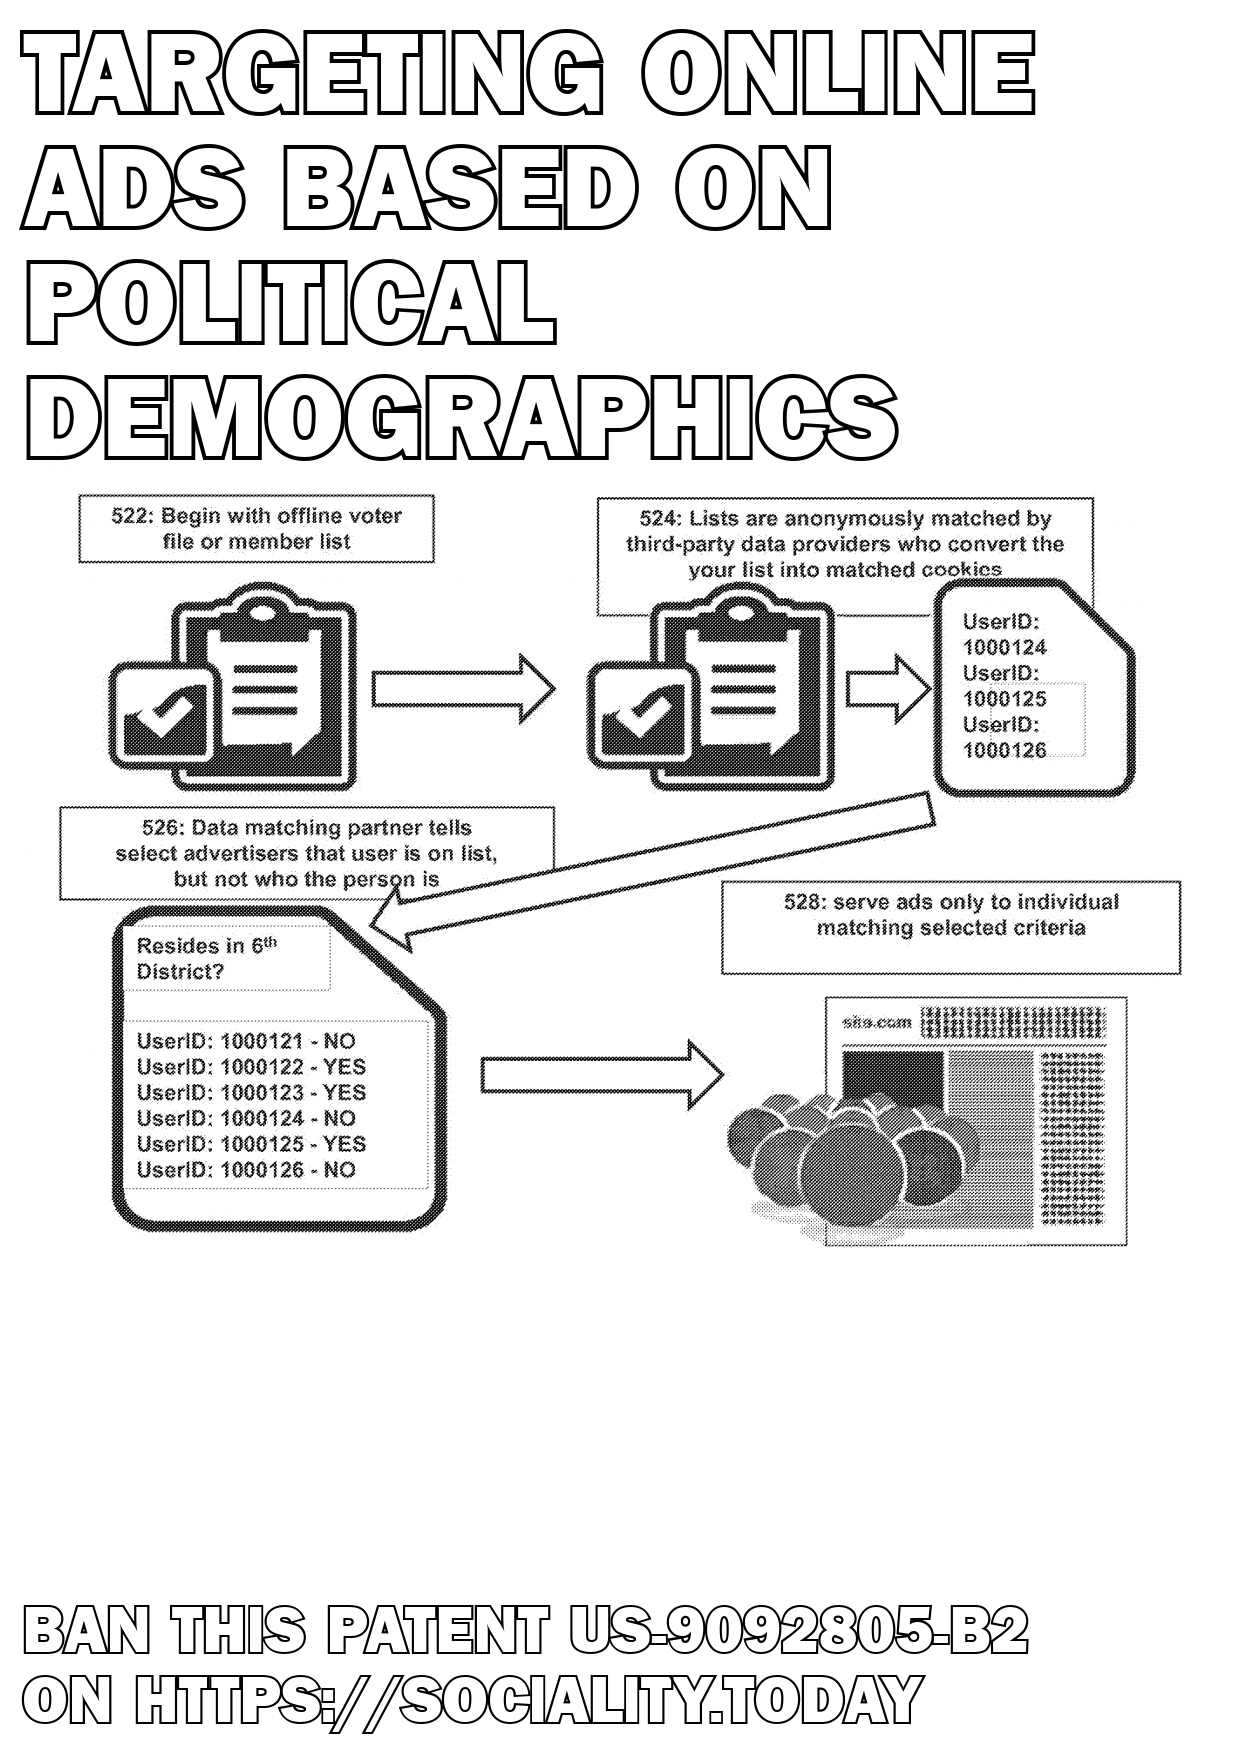 Targeting online ads based on political demographics  - US-9092805-B2